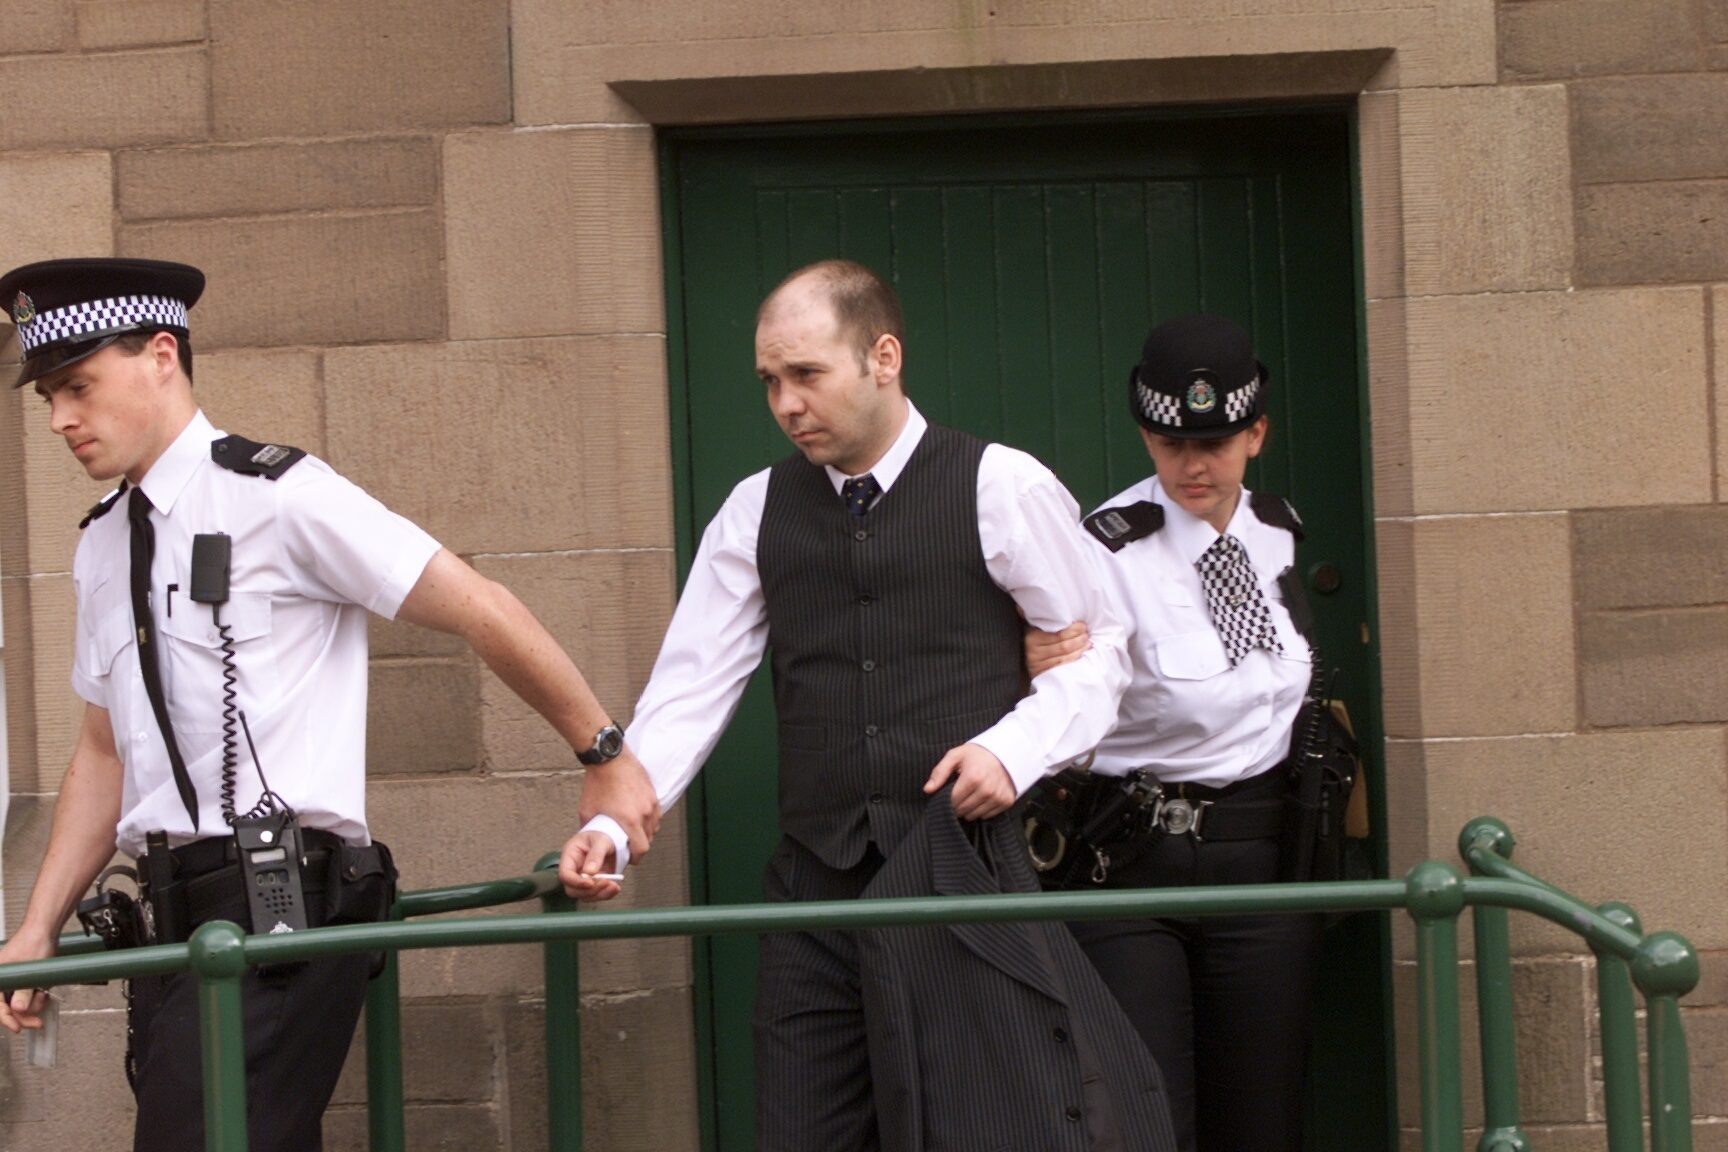 David Roache being taken from Forfar Court to begin his sentence for murder in 2002.